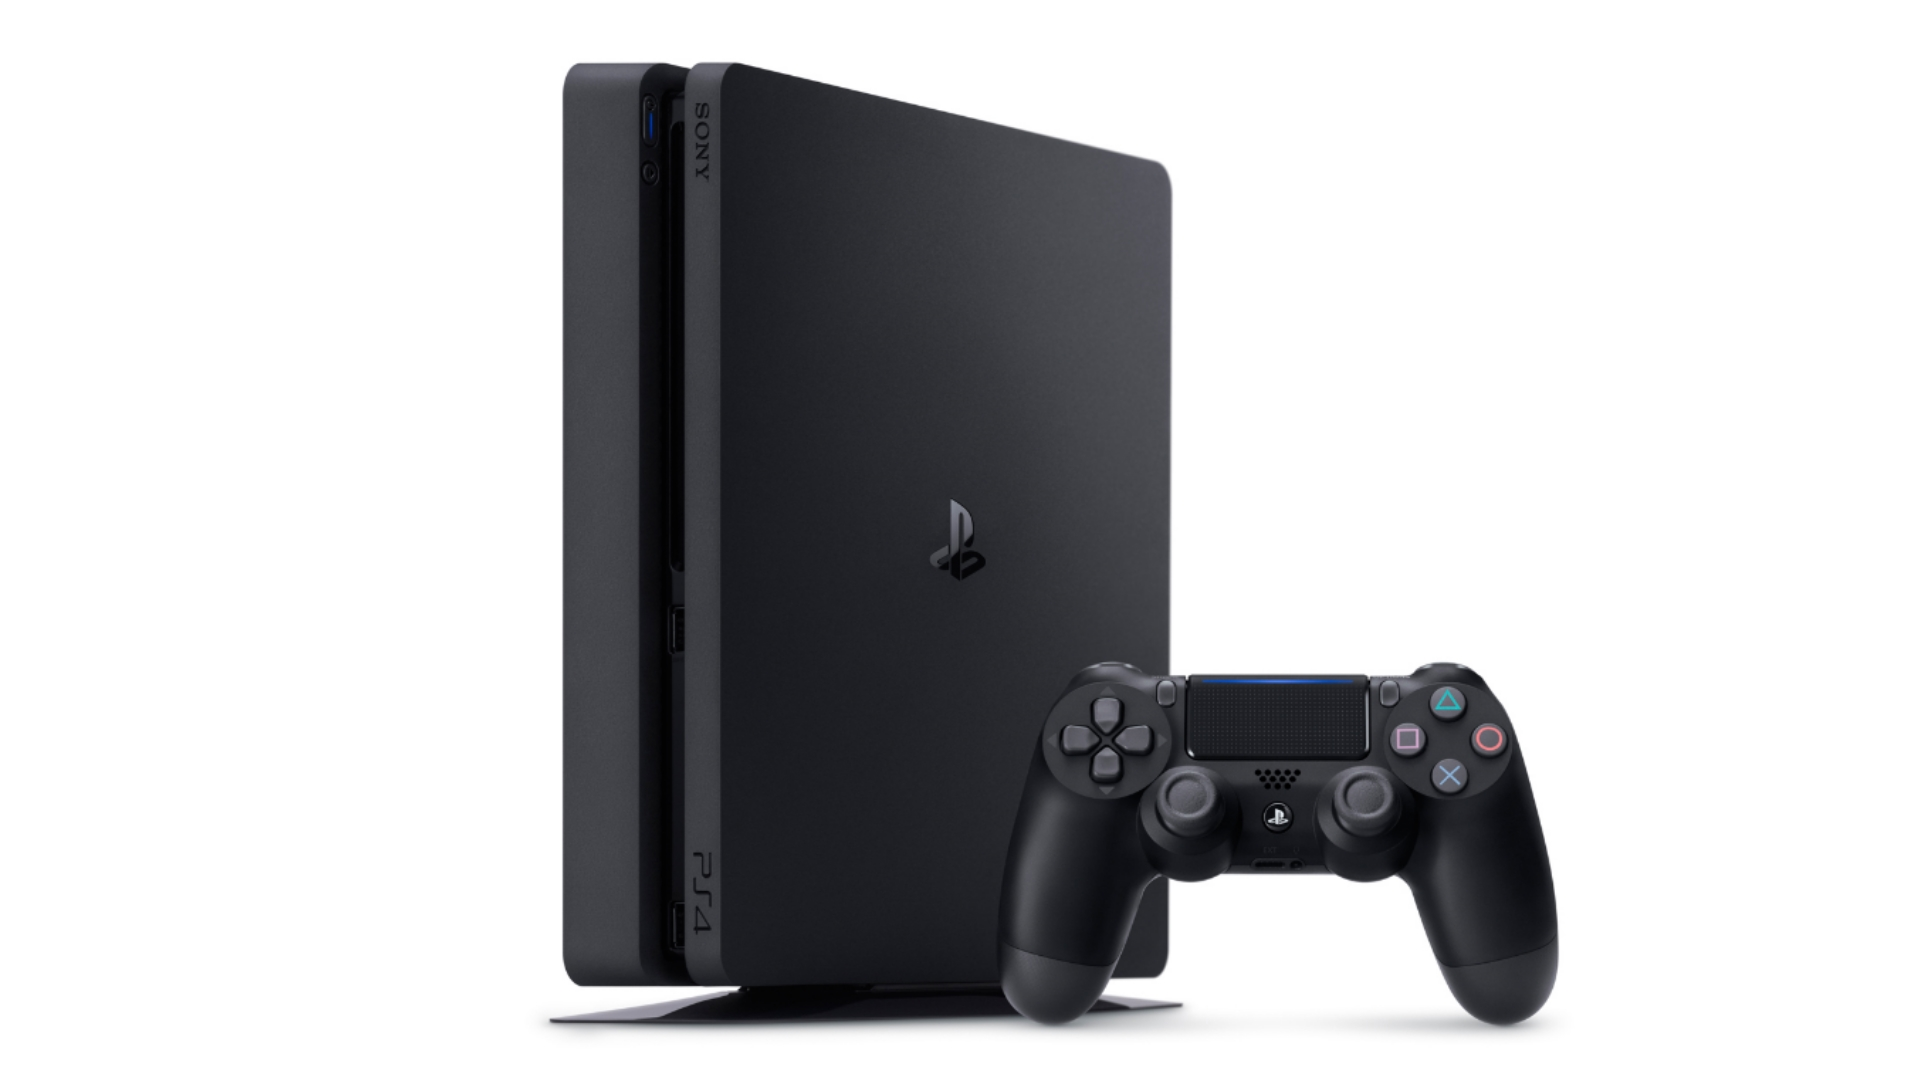 The best PS4 prices, bundles and deals in Singapore (October 2017)